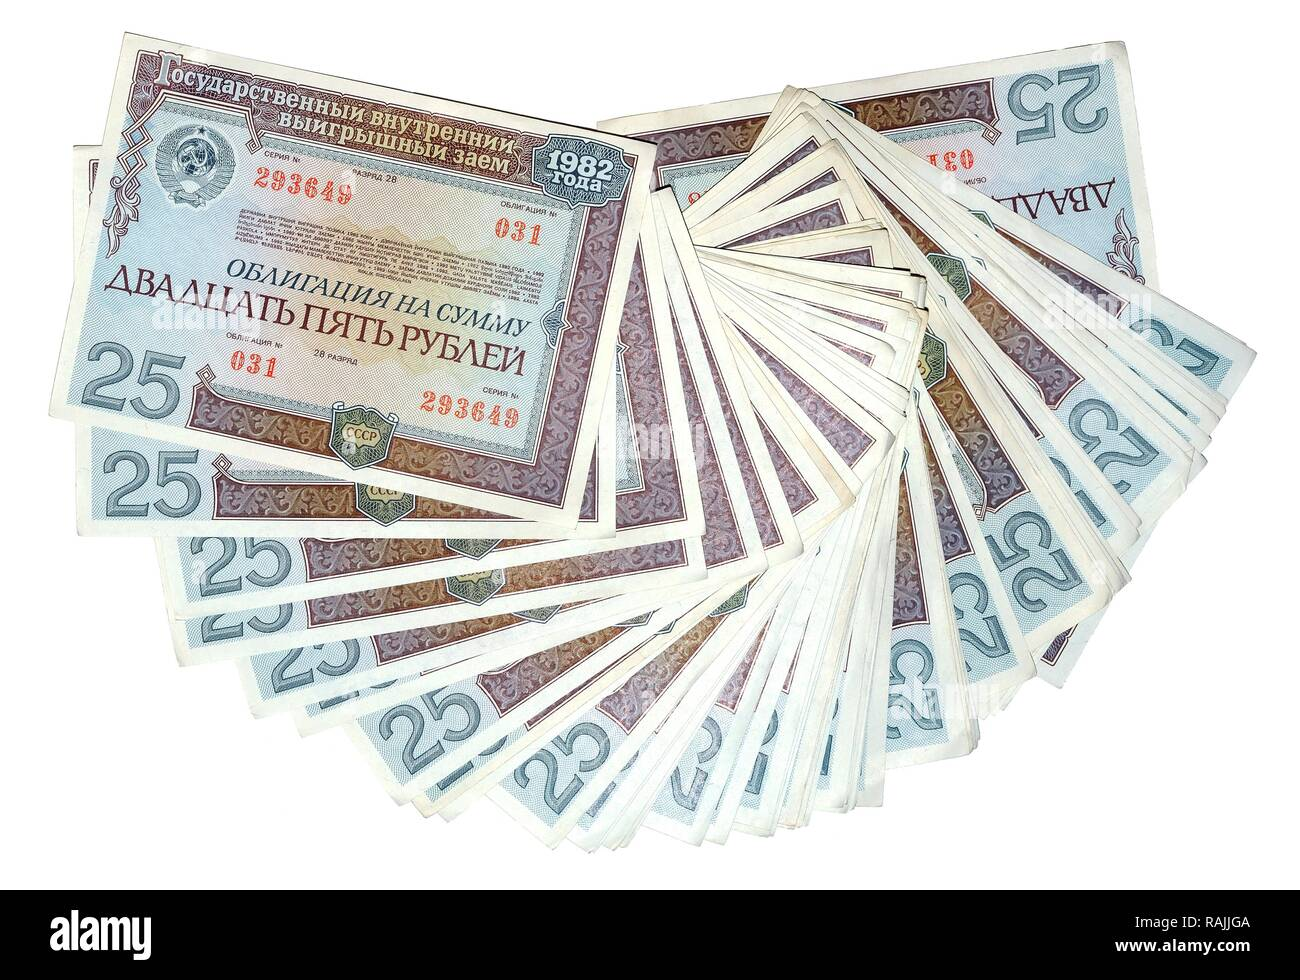 Bonds, home loans of the USSR, 25 rubles, 1982 - Stock Image